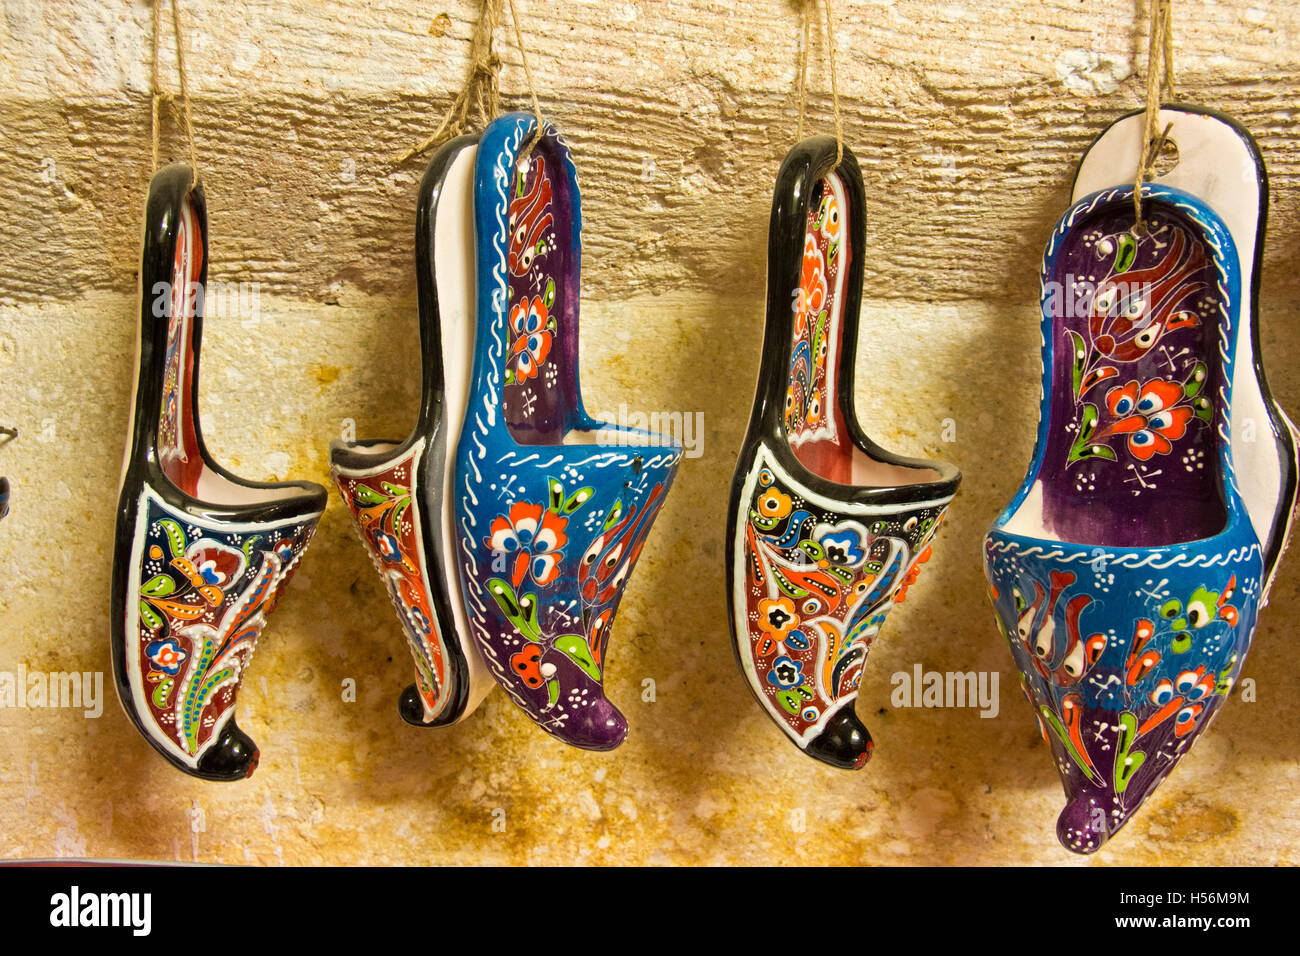 Turkey Holiday Souvenir traditional Slipper in made of ceramic - Stock Image